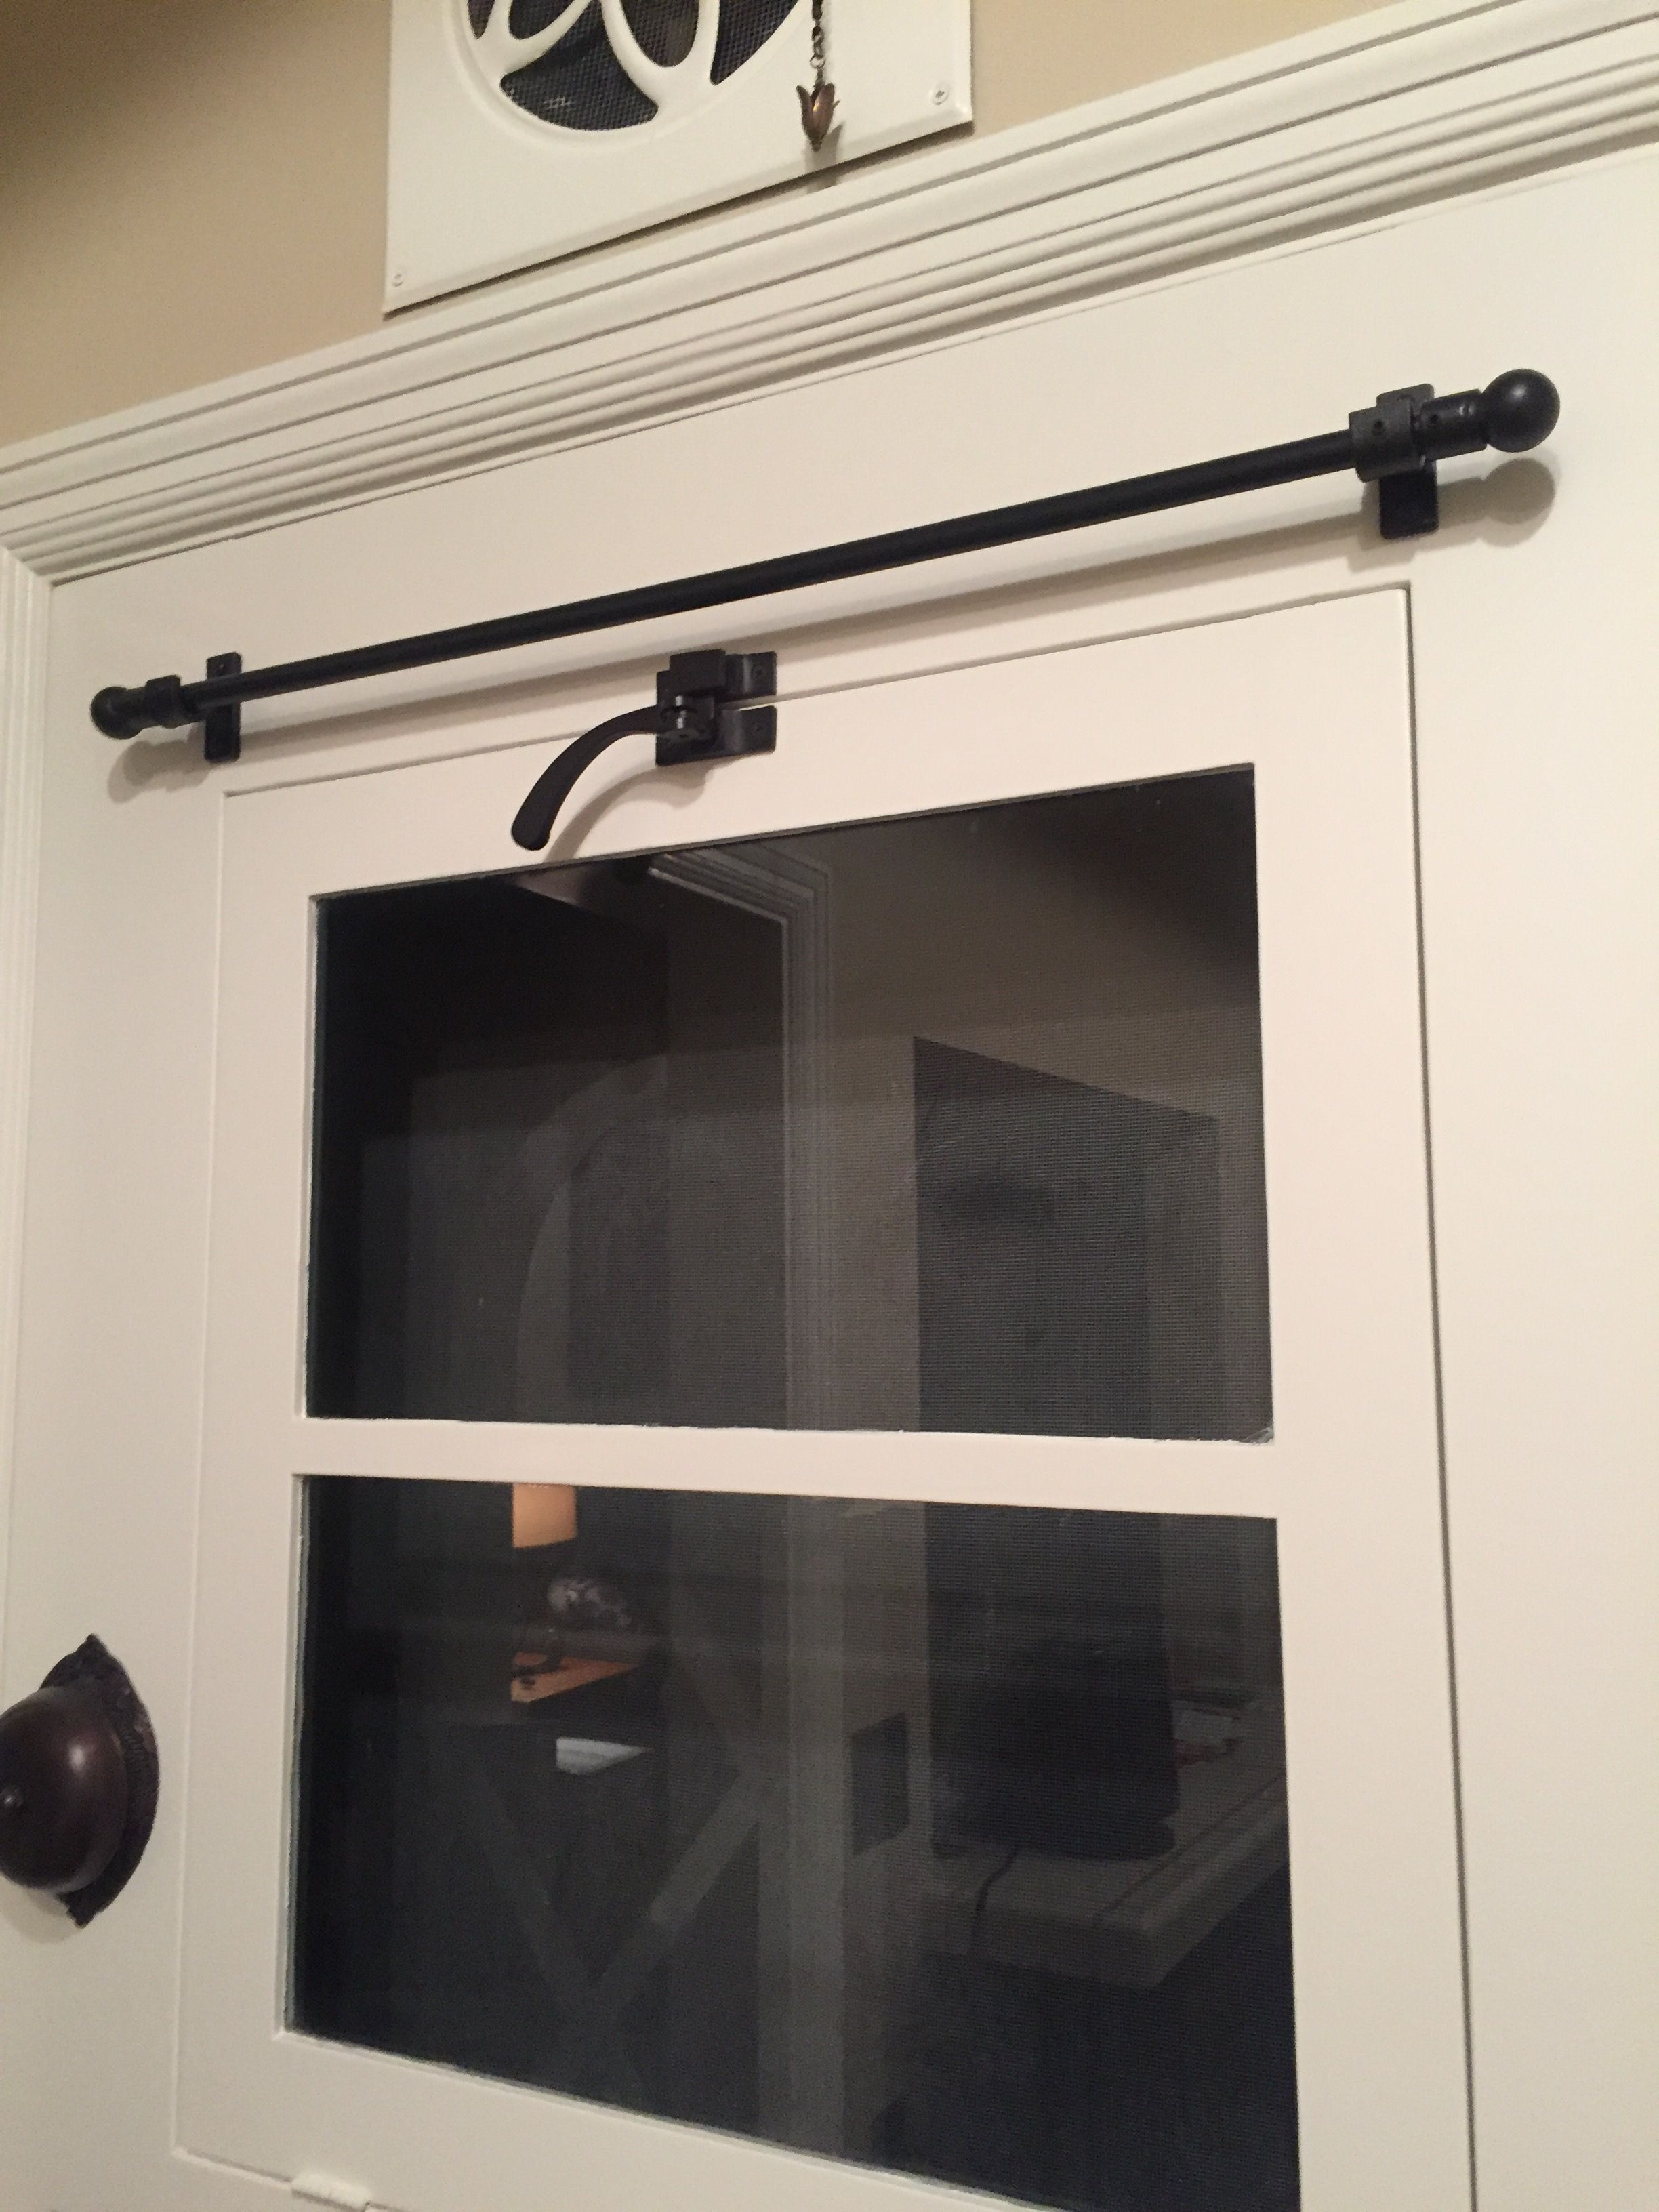 Privacy Iron Rod Cafe Rod With Finials Iron Drapery Rod With